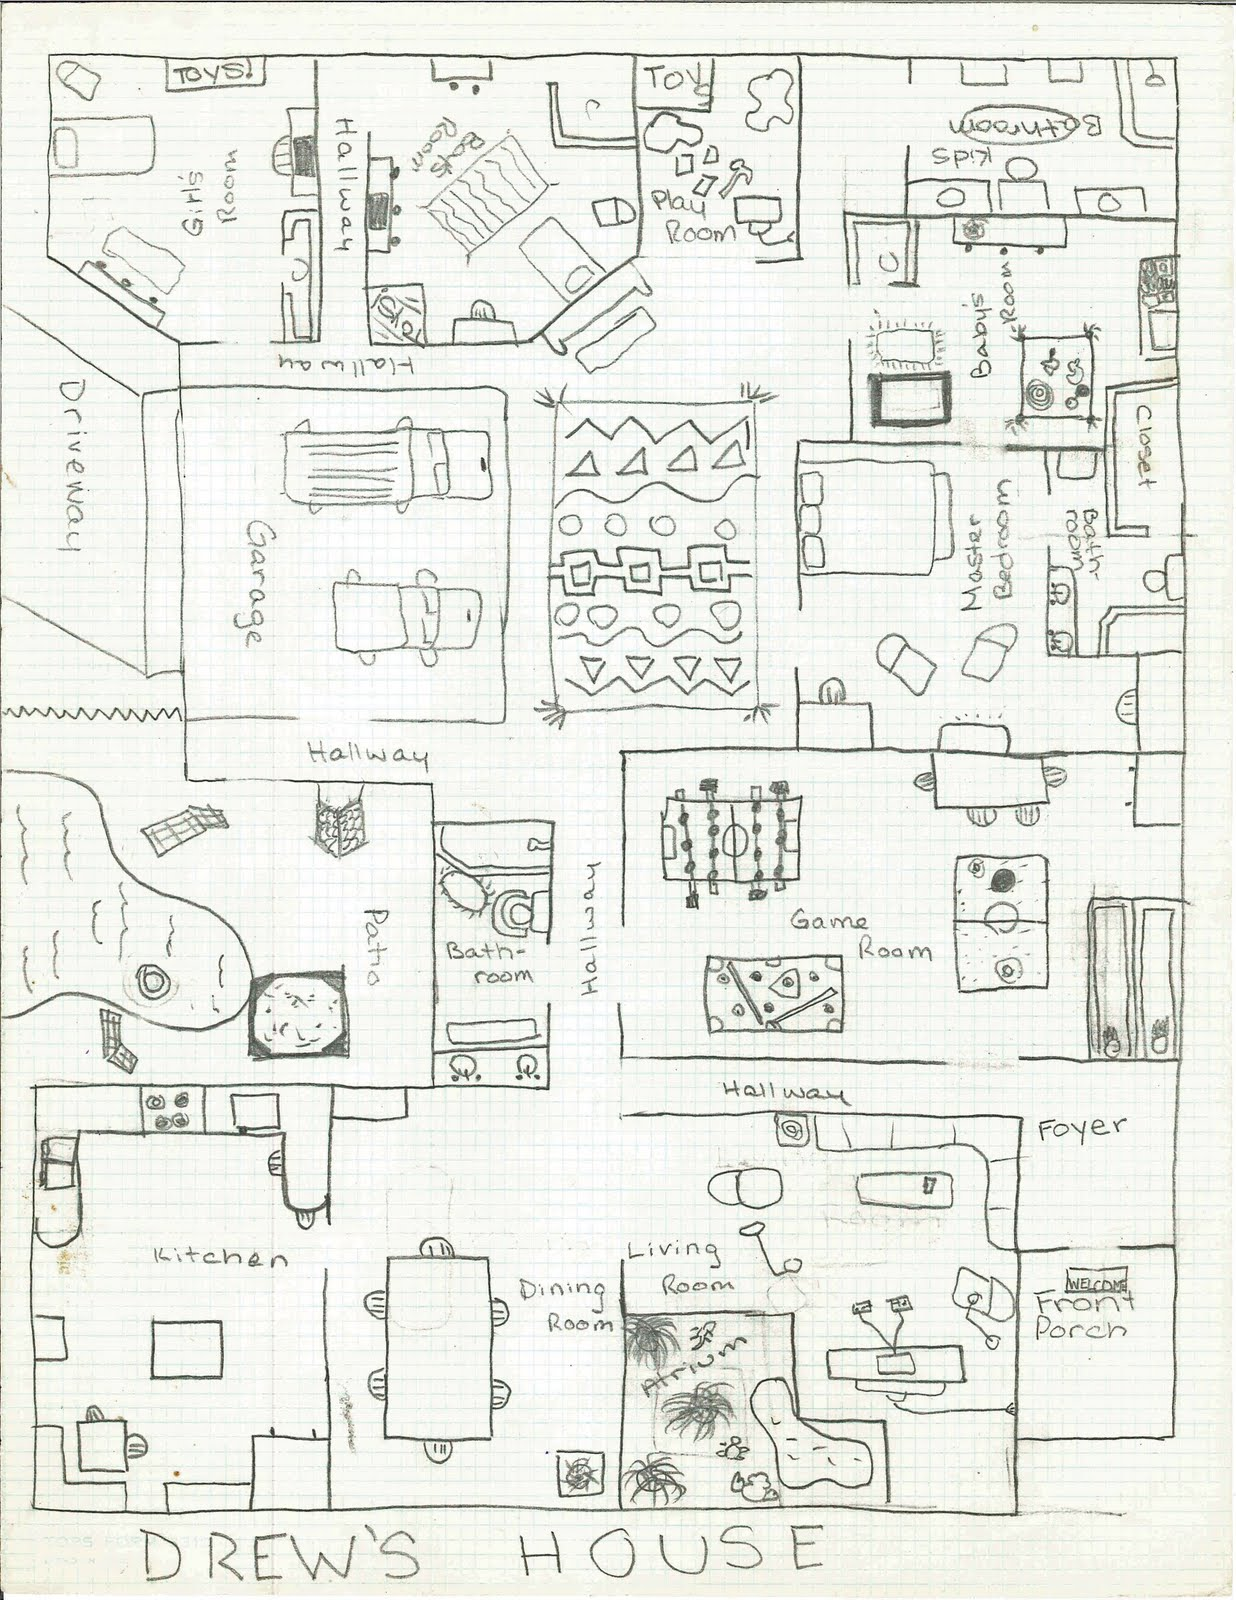 house light wiring diagram schematic library Light Wiring Diagram spray booth wiring diagram wiring diagram database